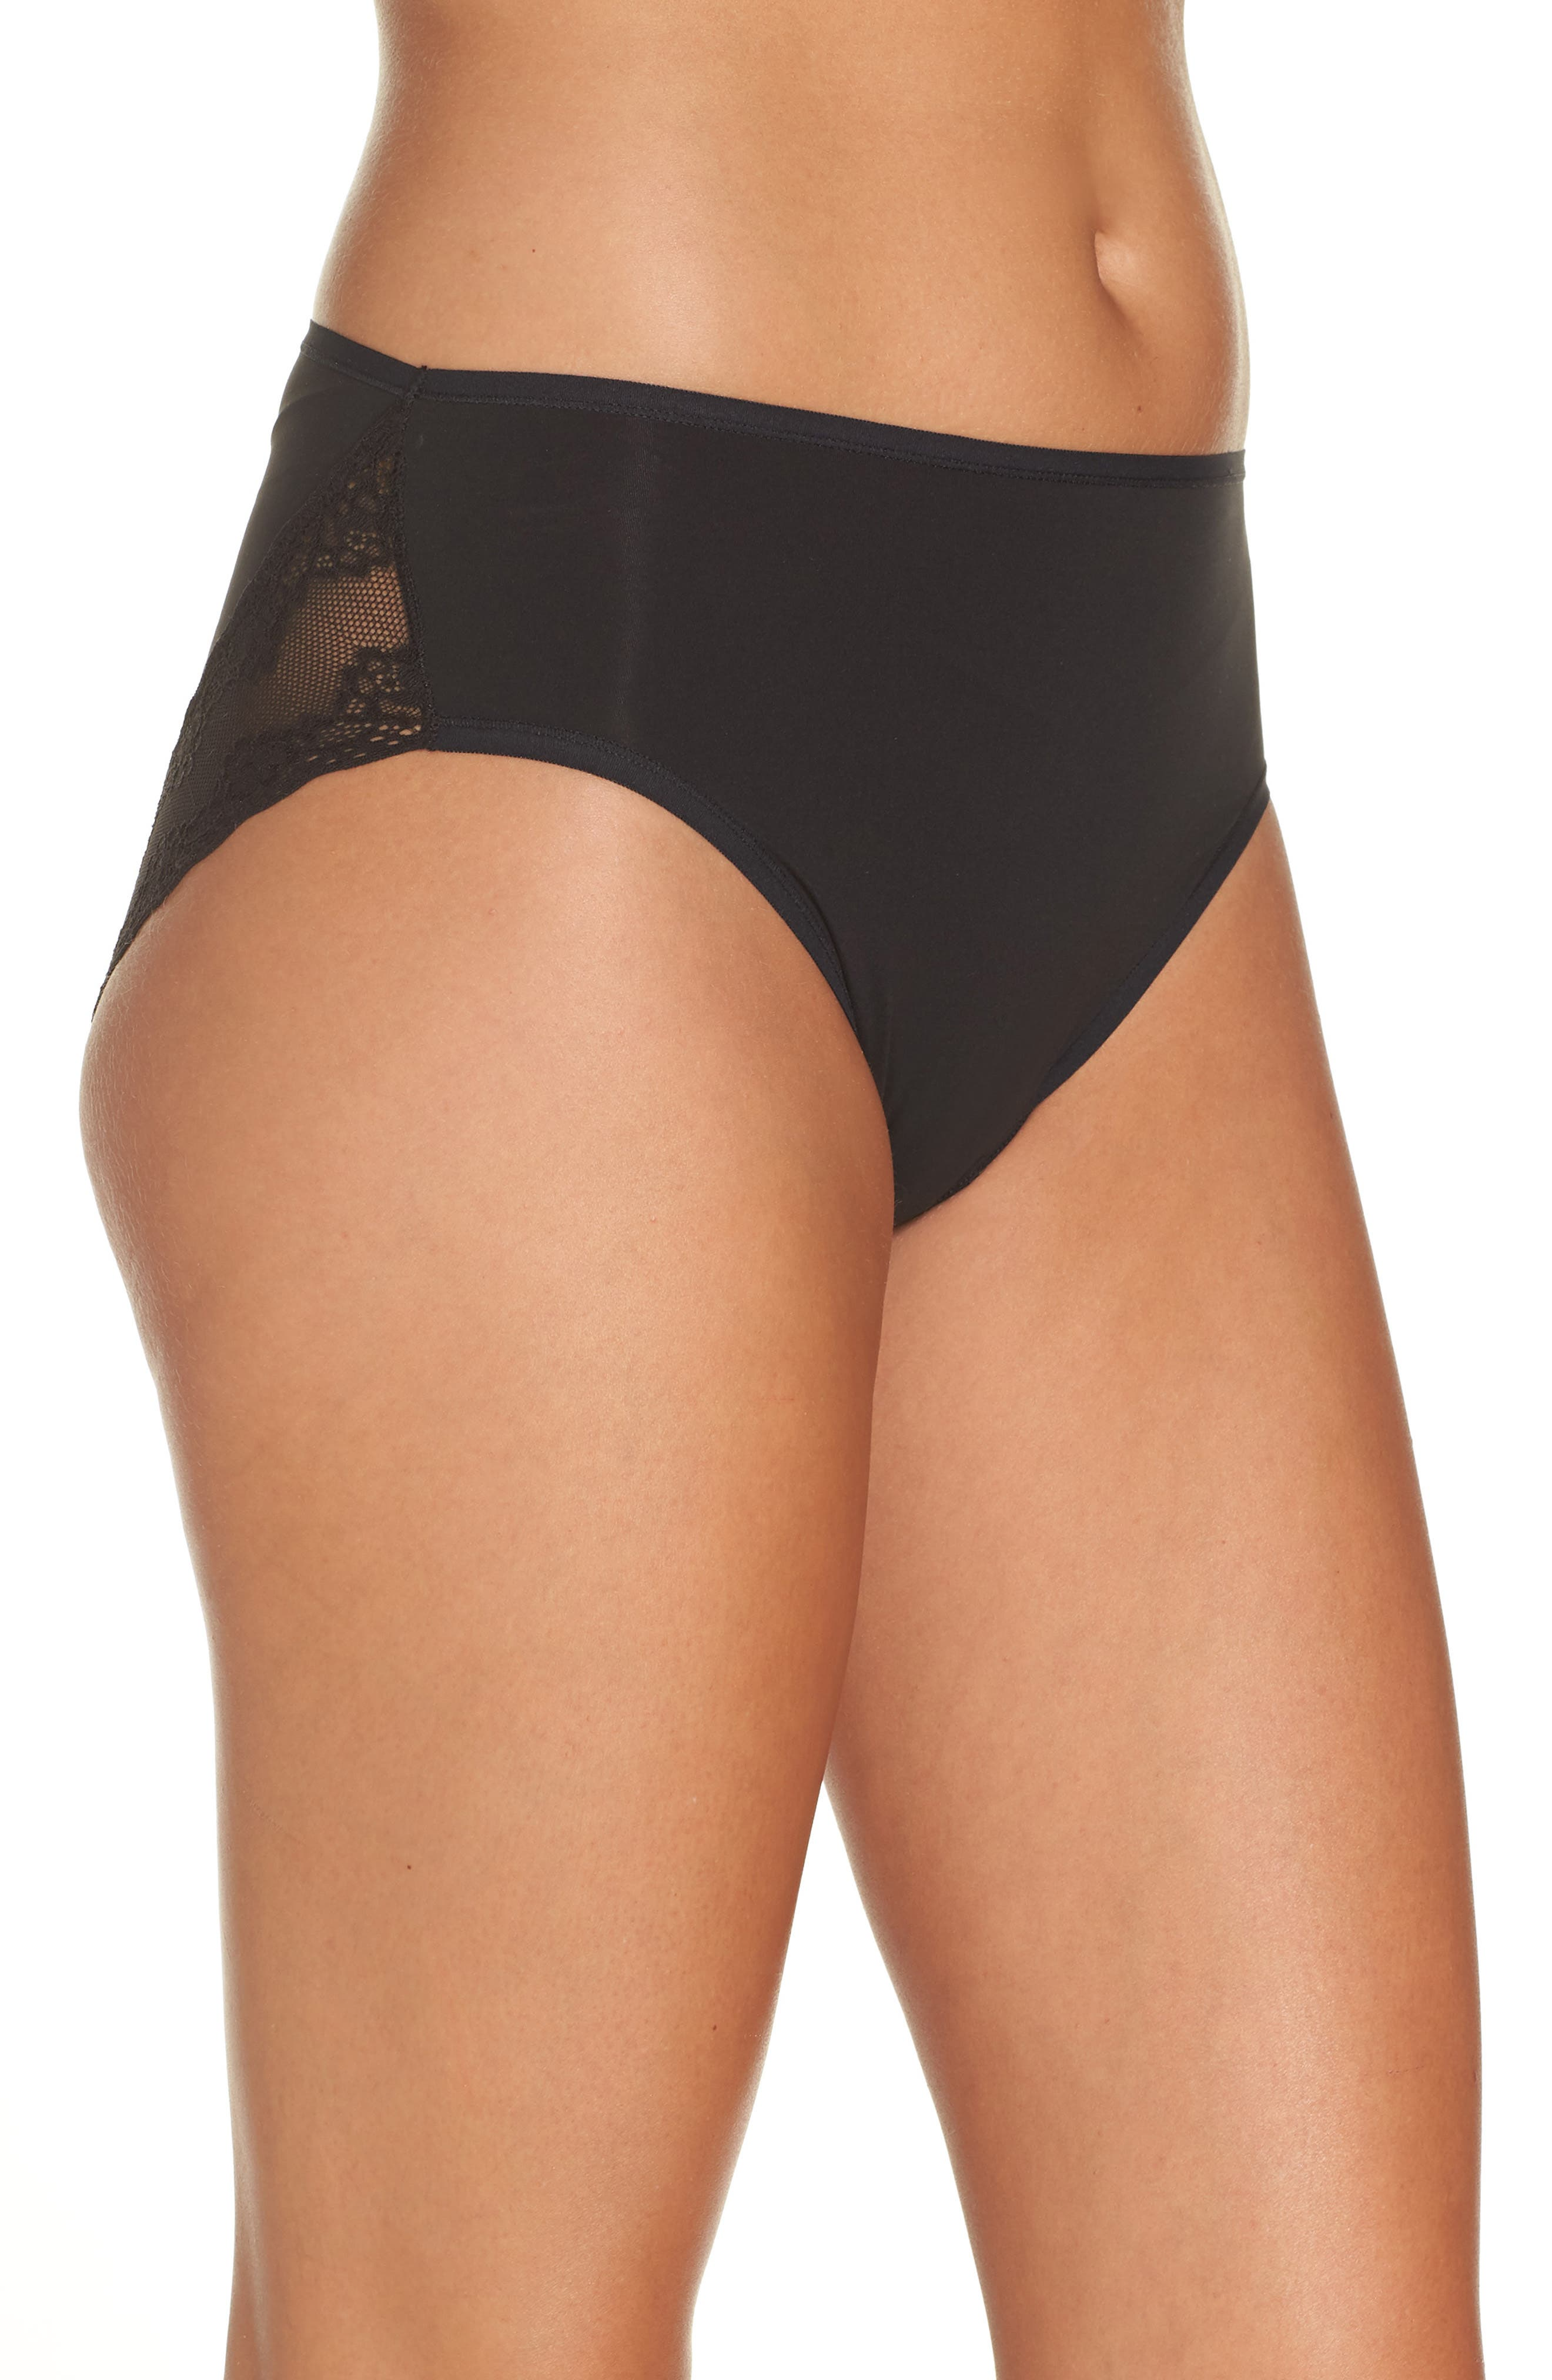 Bliss Perfection French Cut Briefs,                             Alternate thumbnail 3, color,                             BLACK